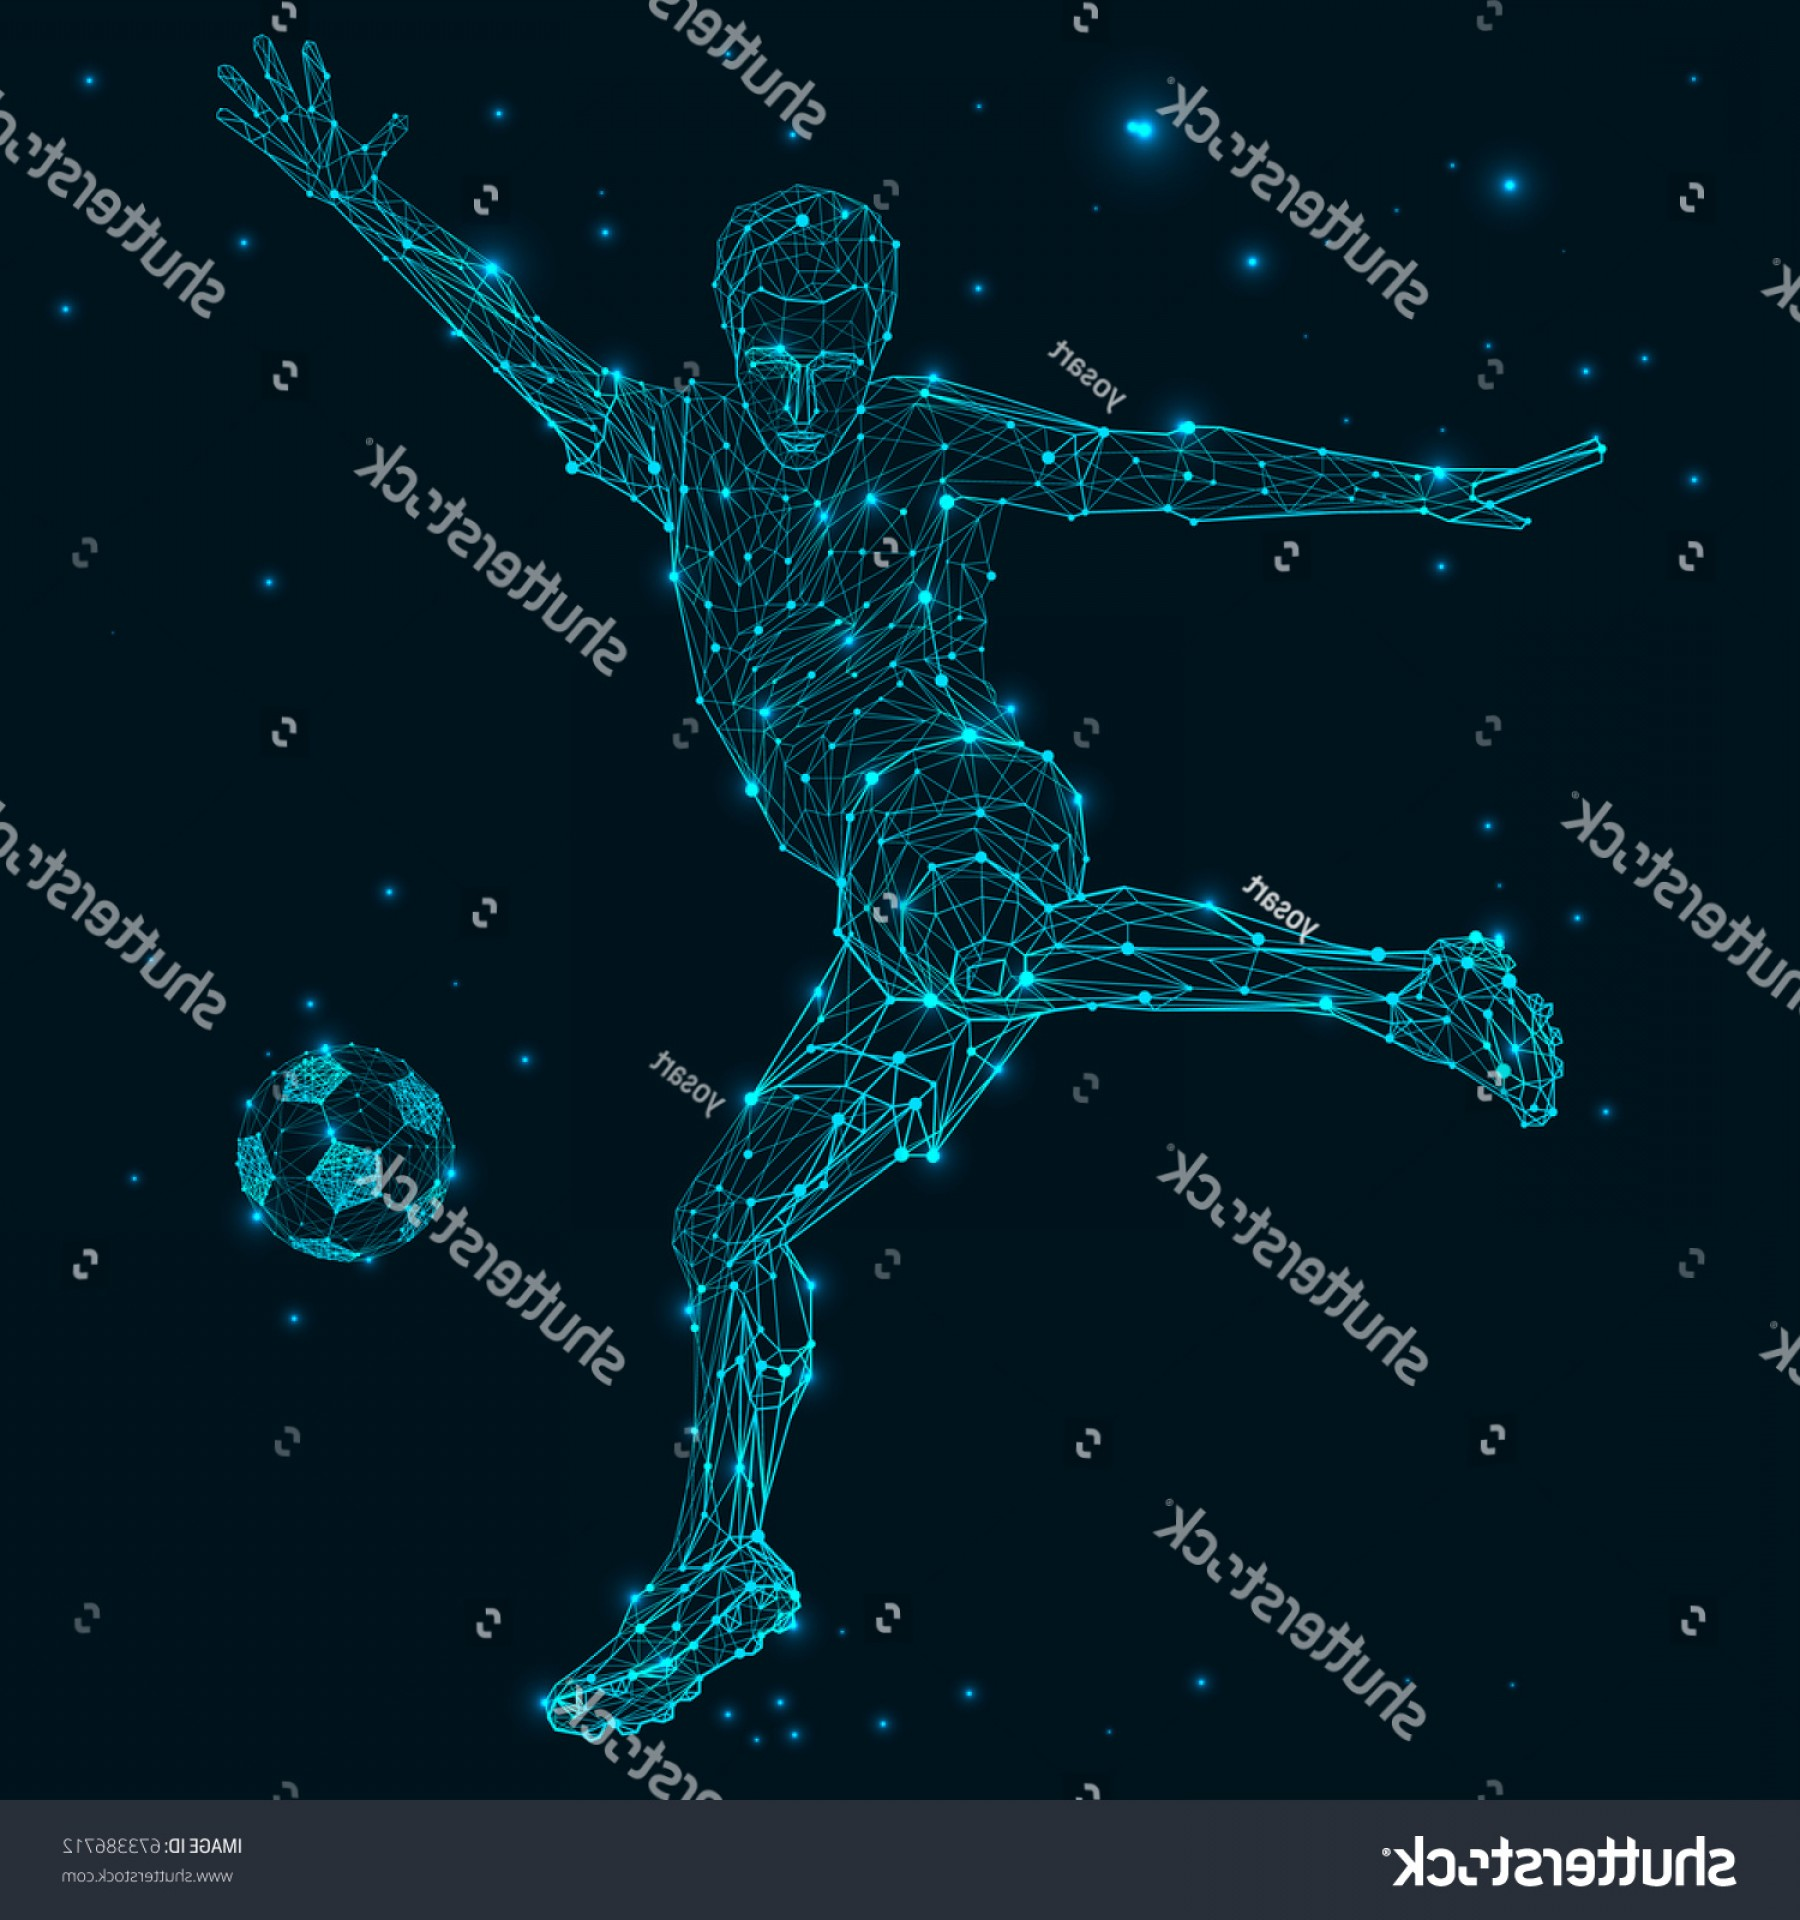 Abstract Football Vector Outline: Low Poly Wire Outline Geometric Illustration